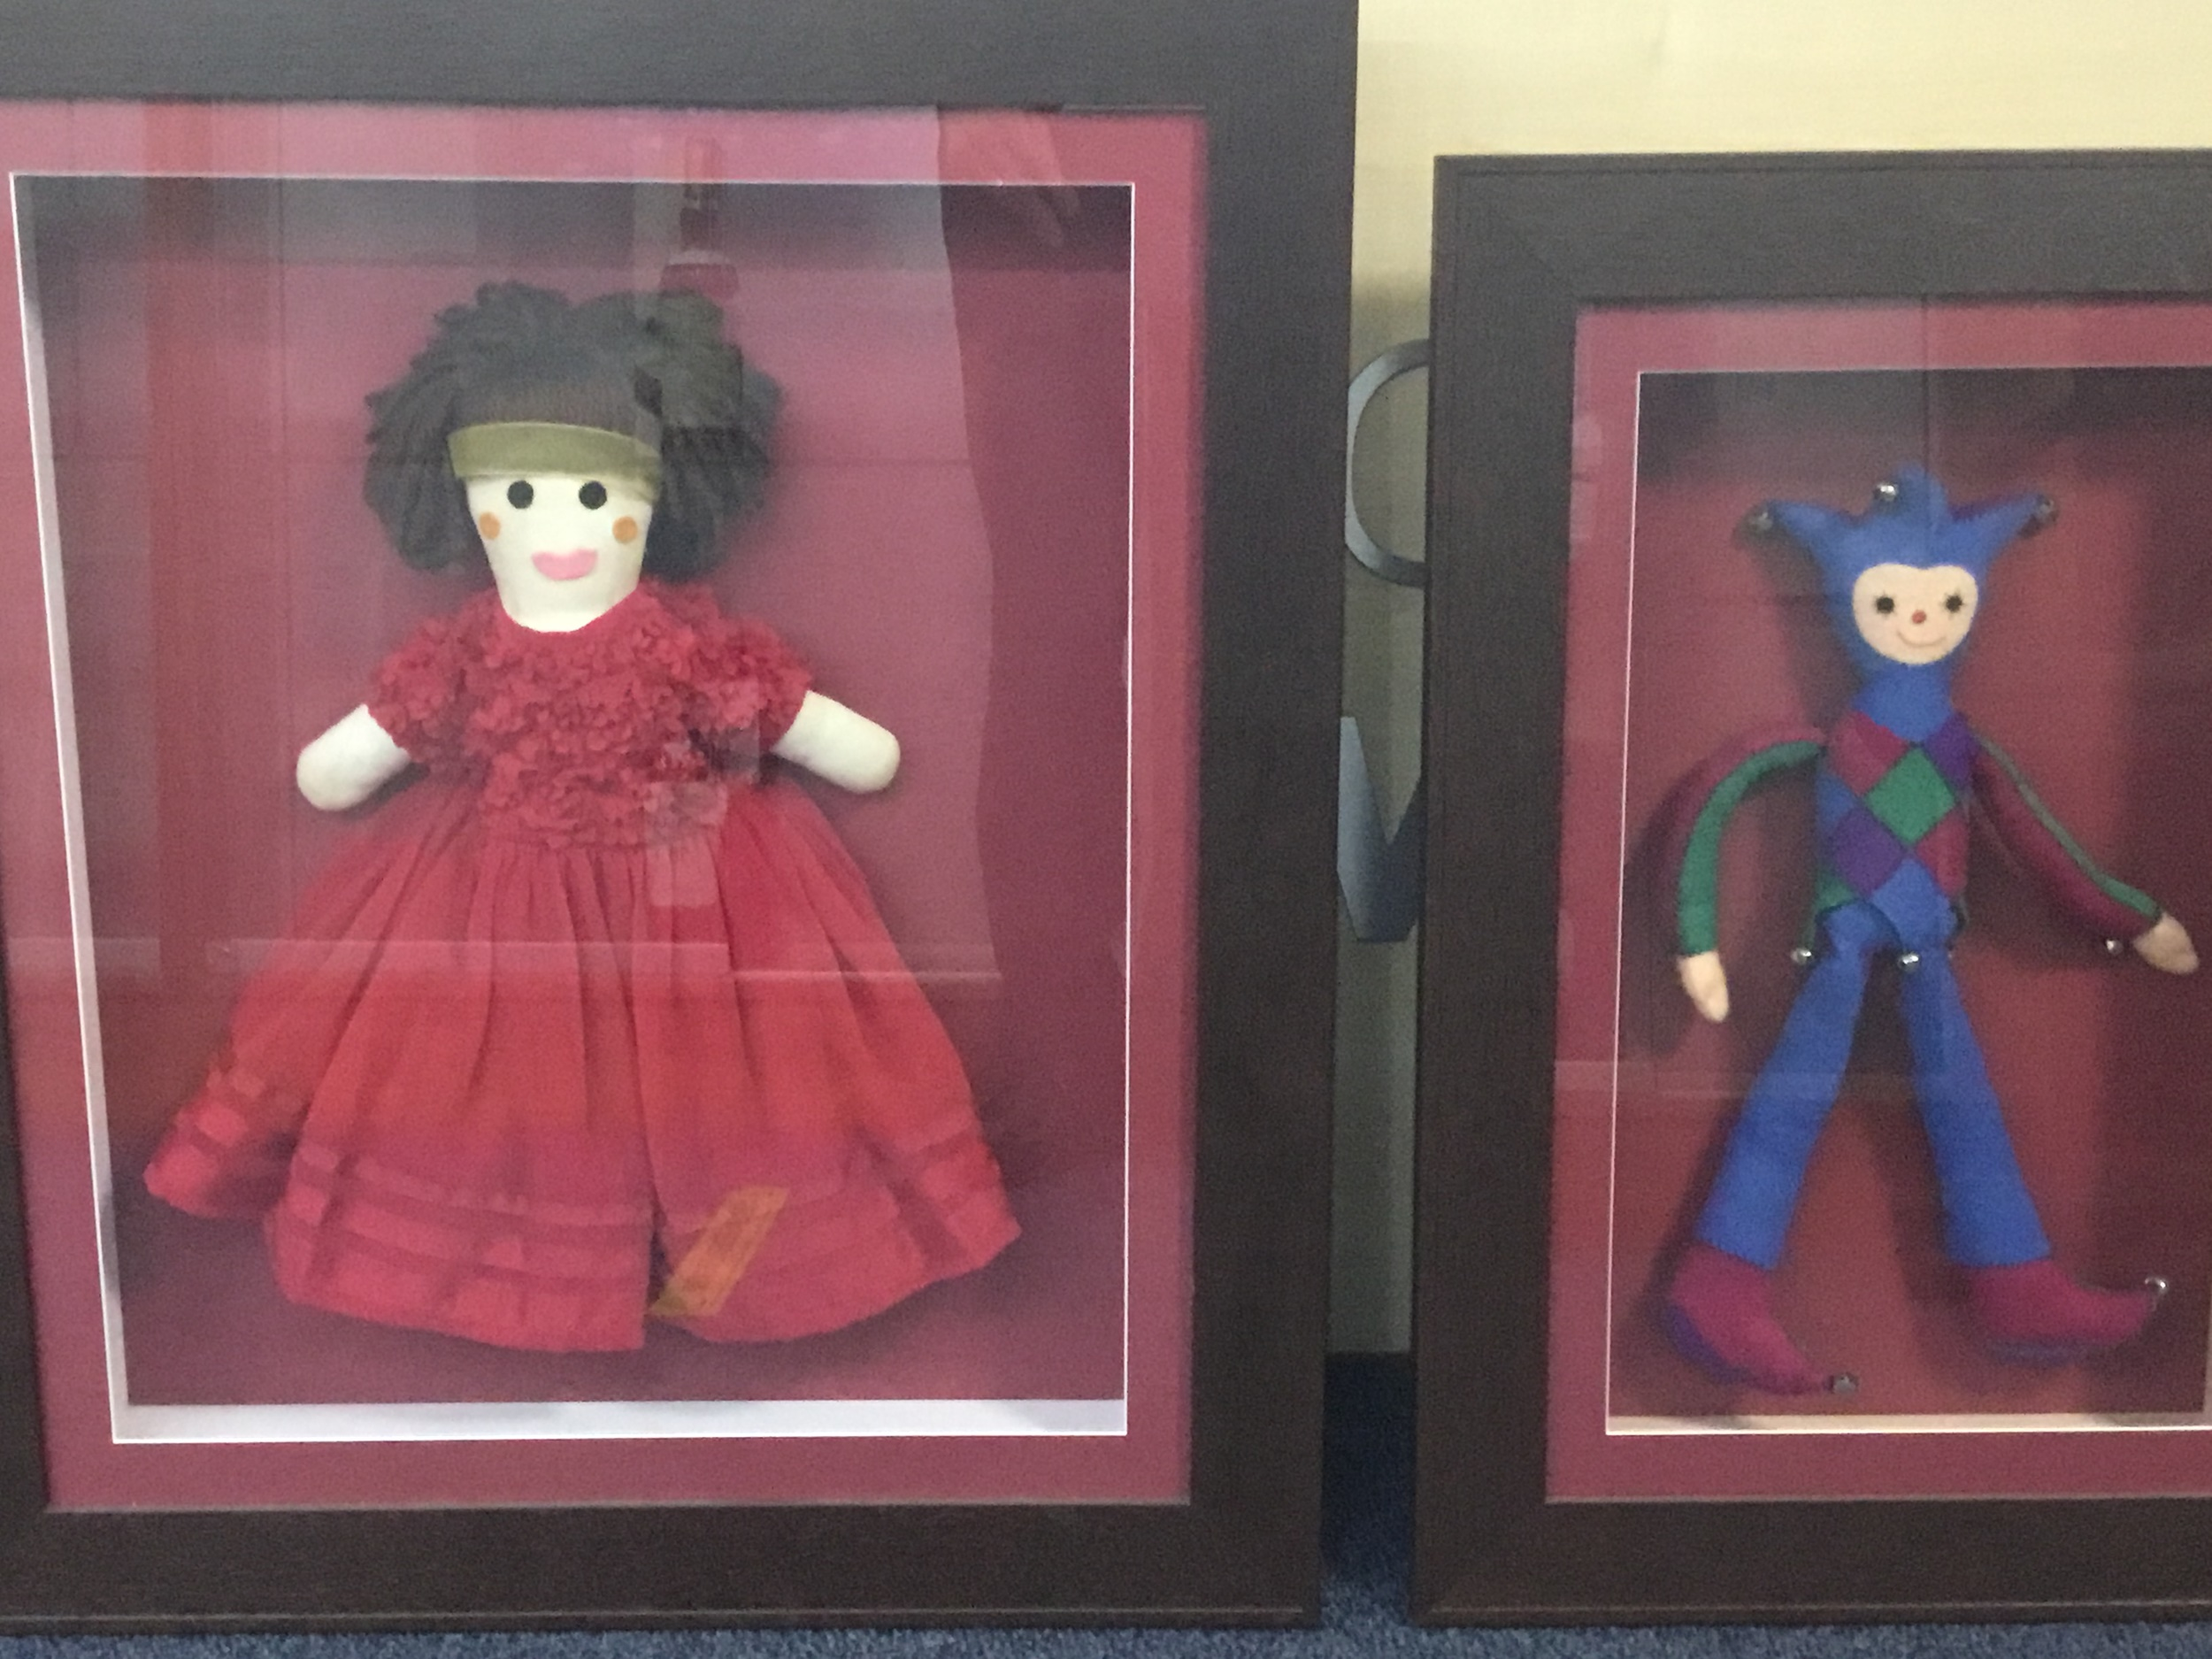 A LOT OF DECORATIVE PICTURES, A BOOMERANG, WOOD CARVINGS AND VARIOUS DOLLS